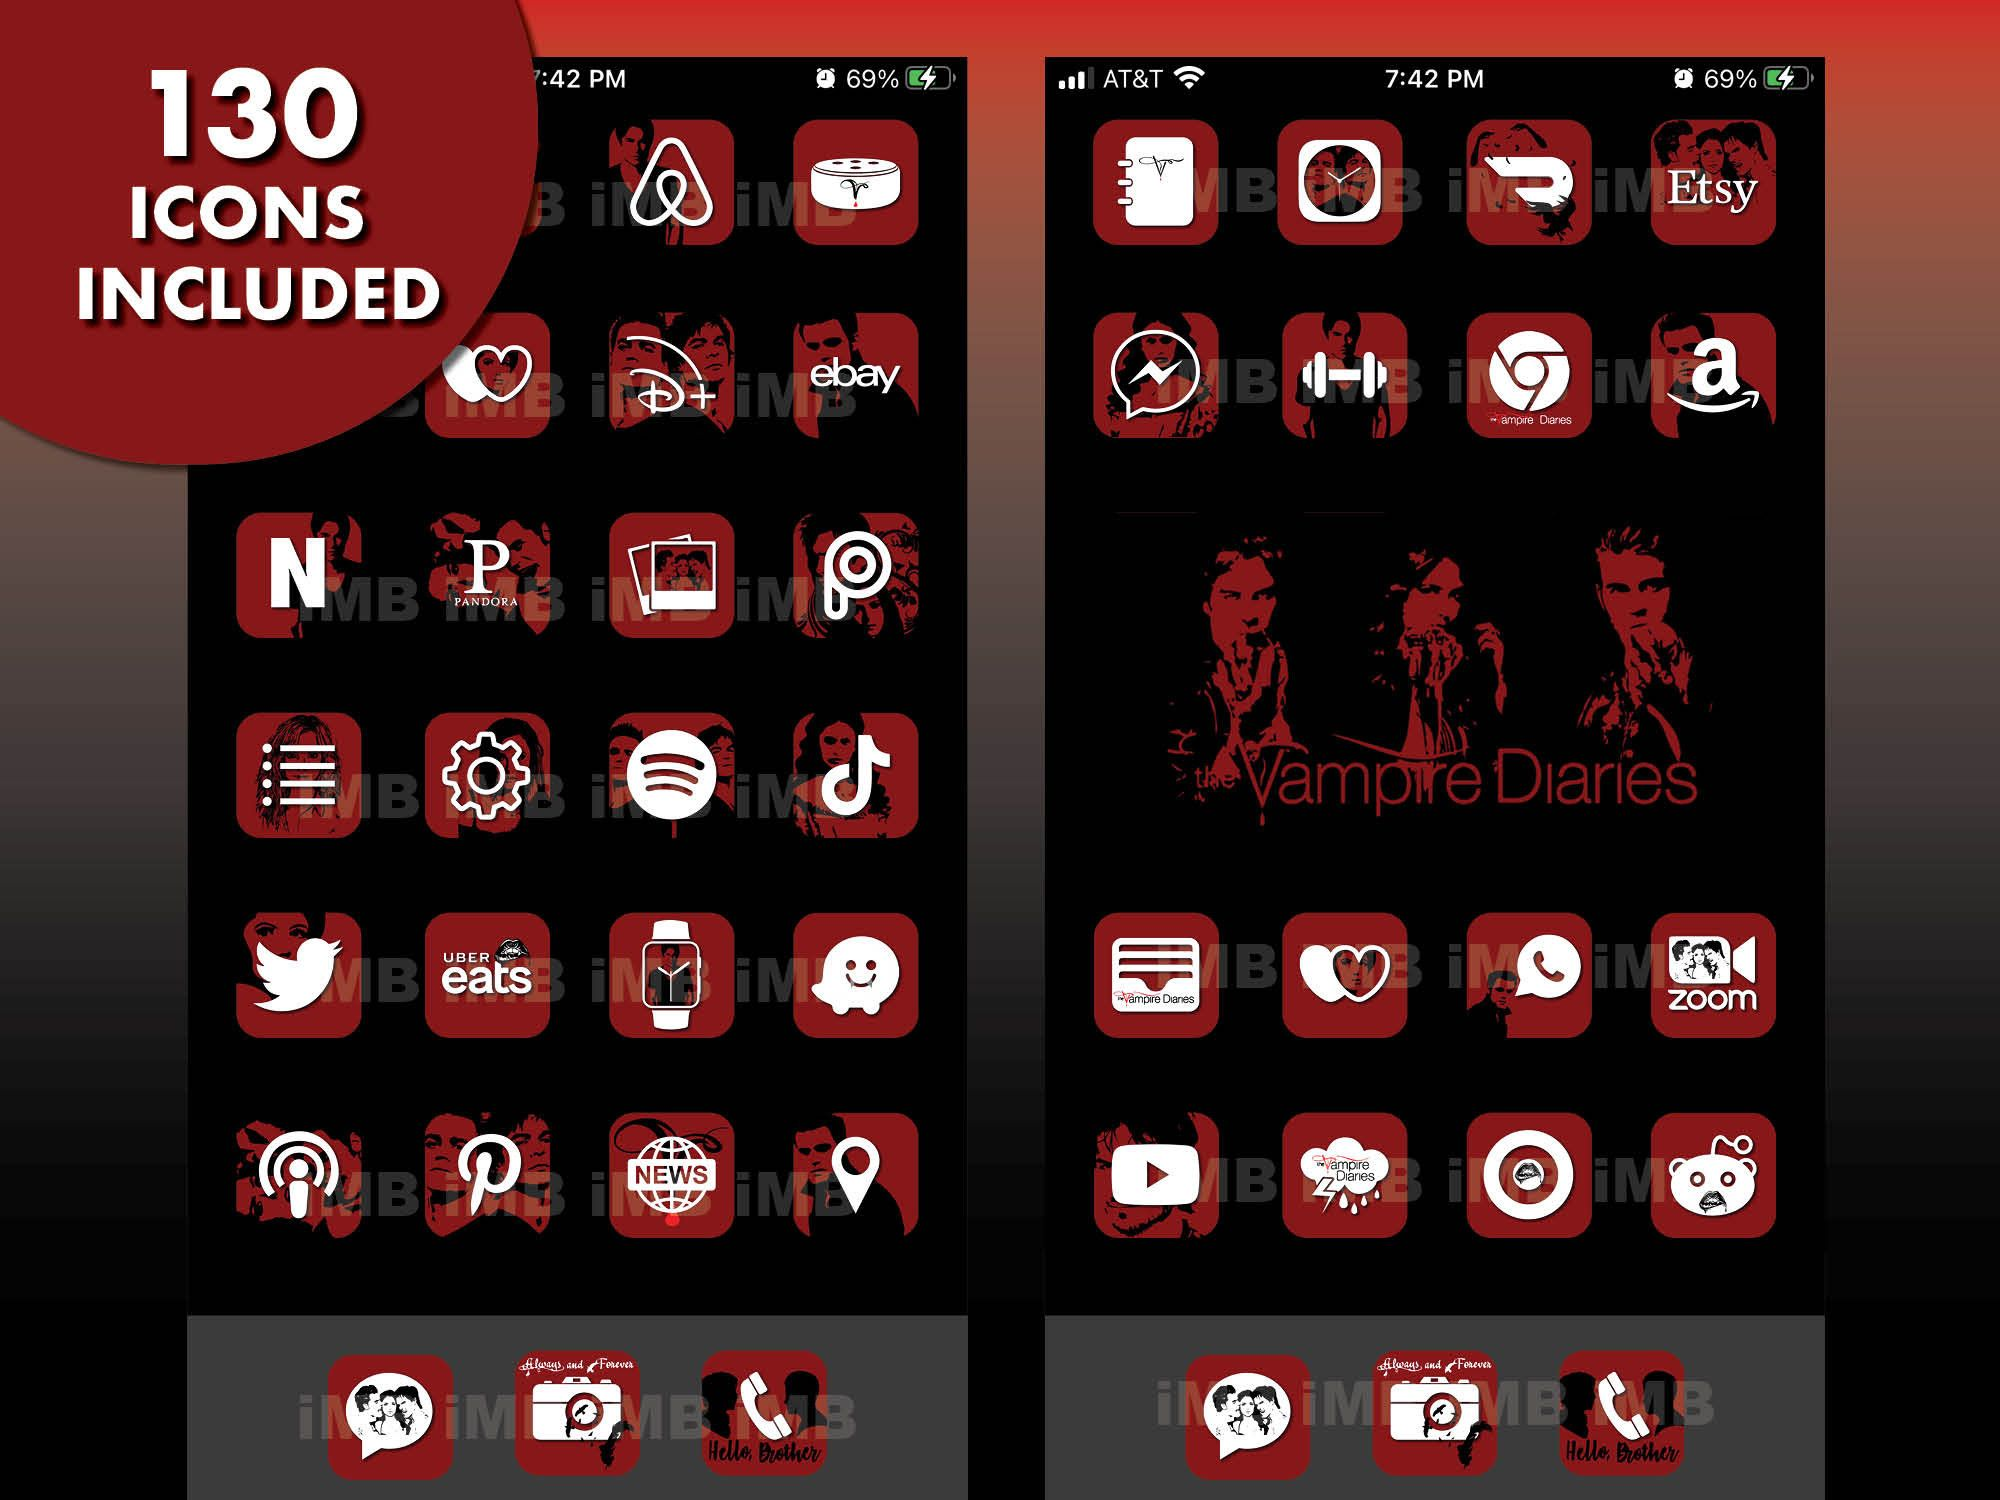 Ios 14 Icons The Vampire Diaries Includes 130 Iphone App Etsy App Store Icon Iphone Apps Vampire Diaries